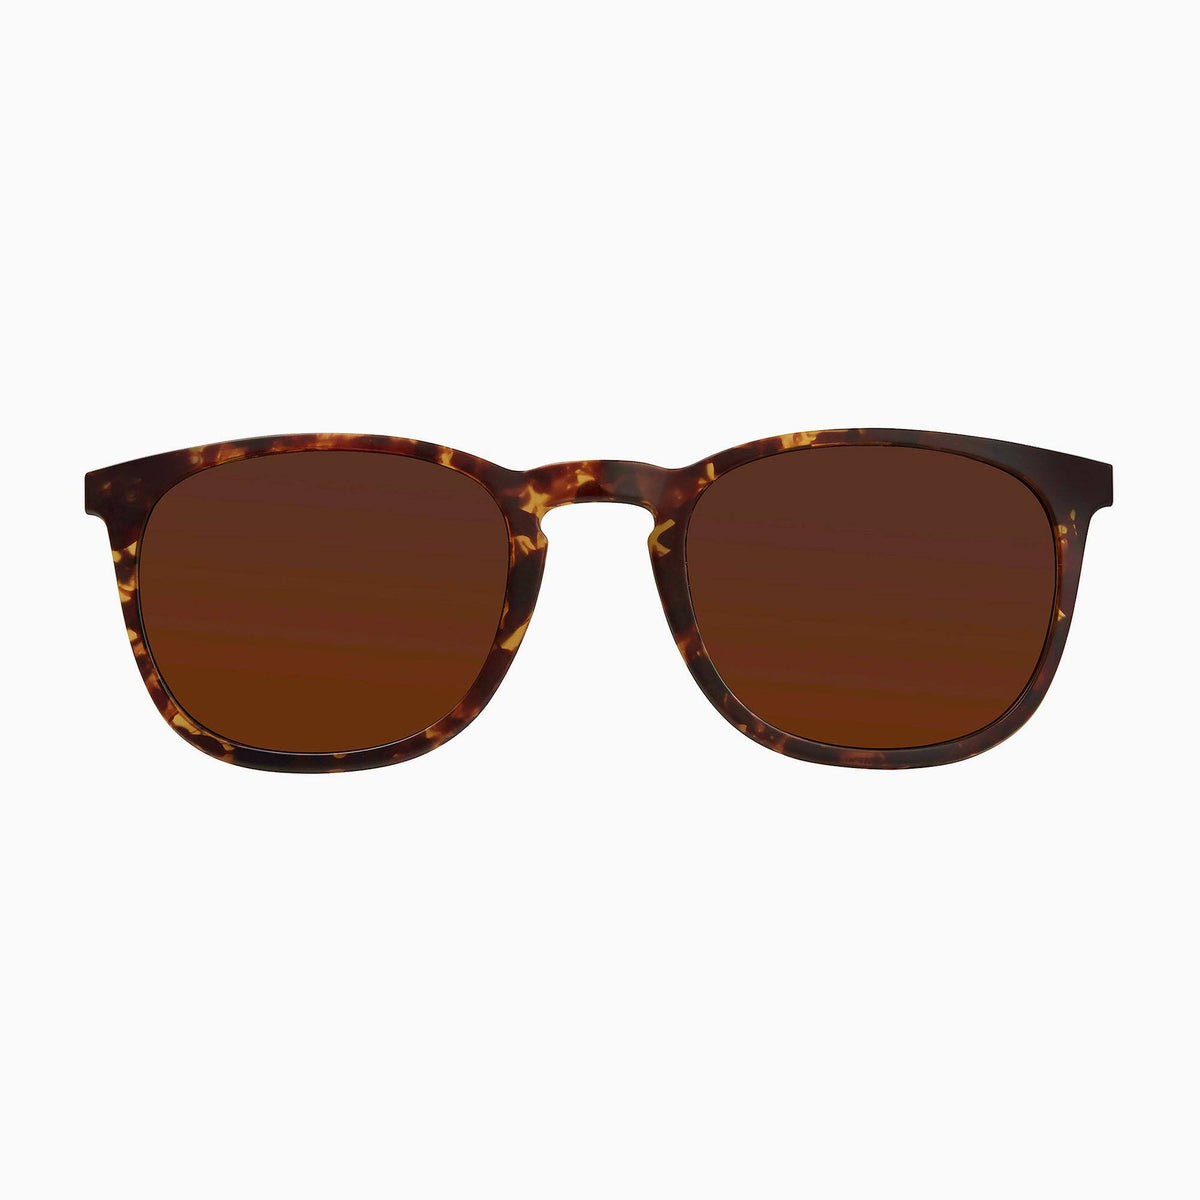 Dark Tortoise / Solid Brown Lens